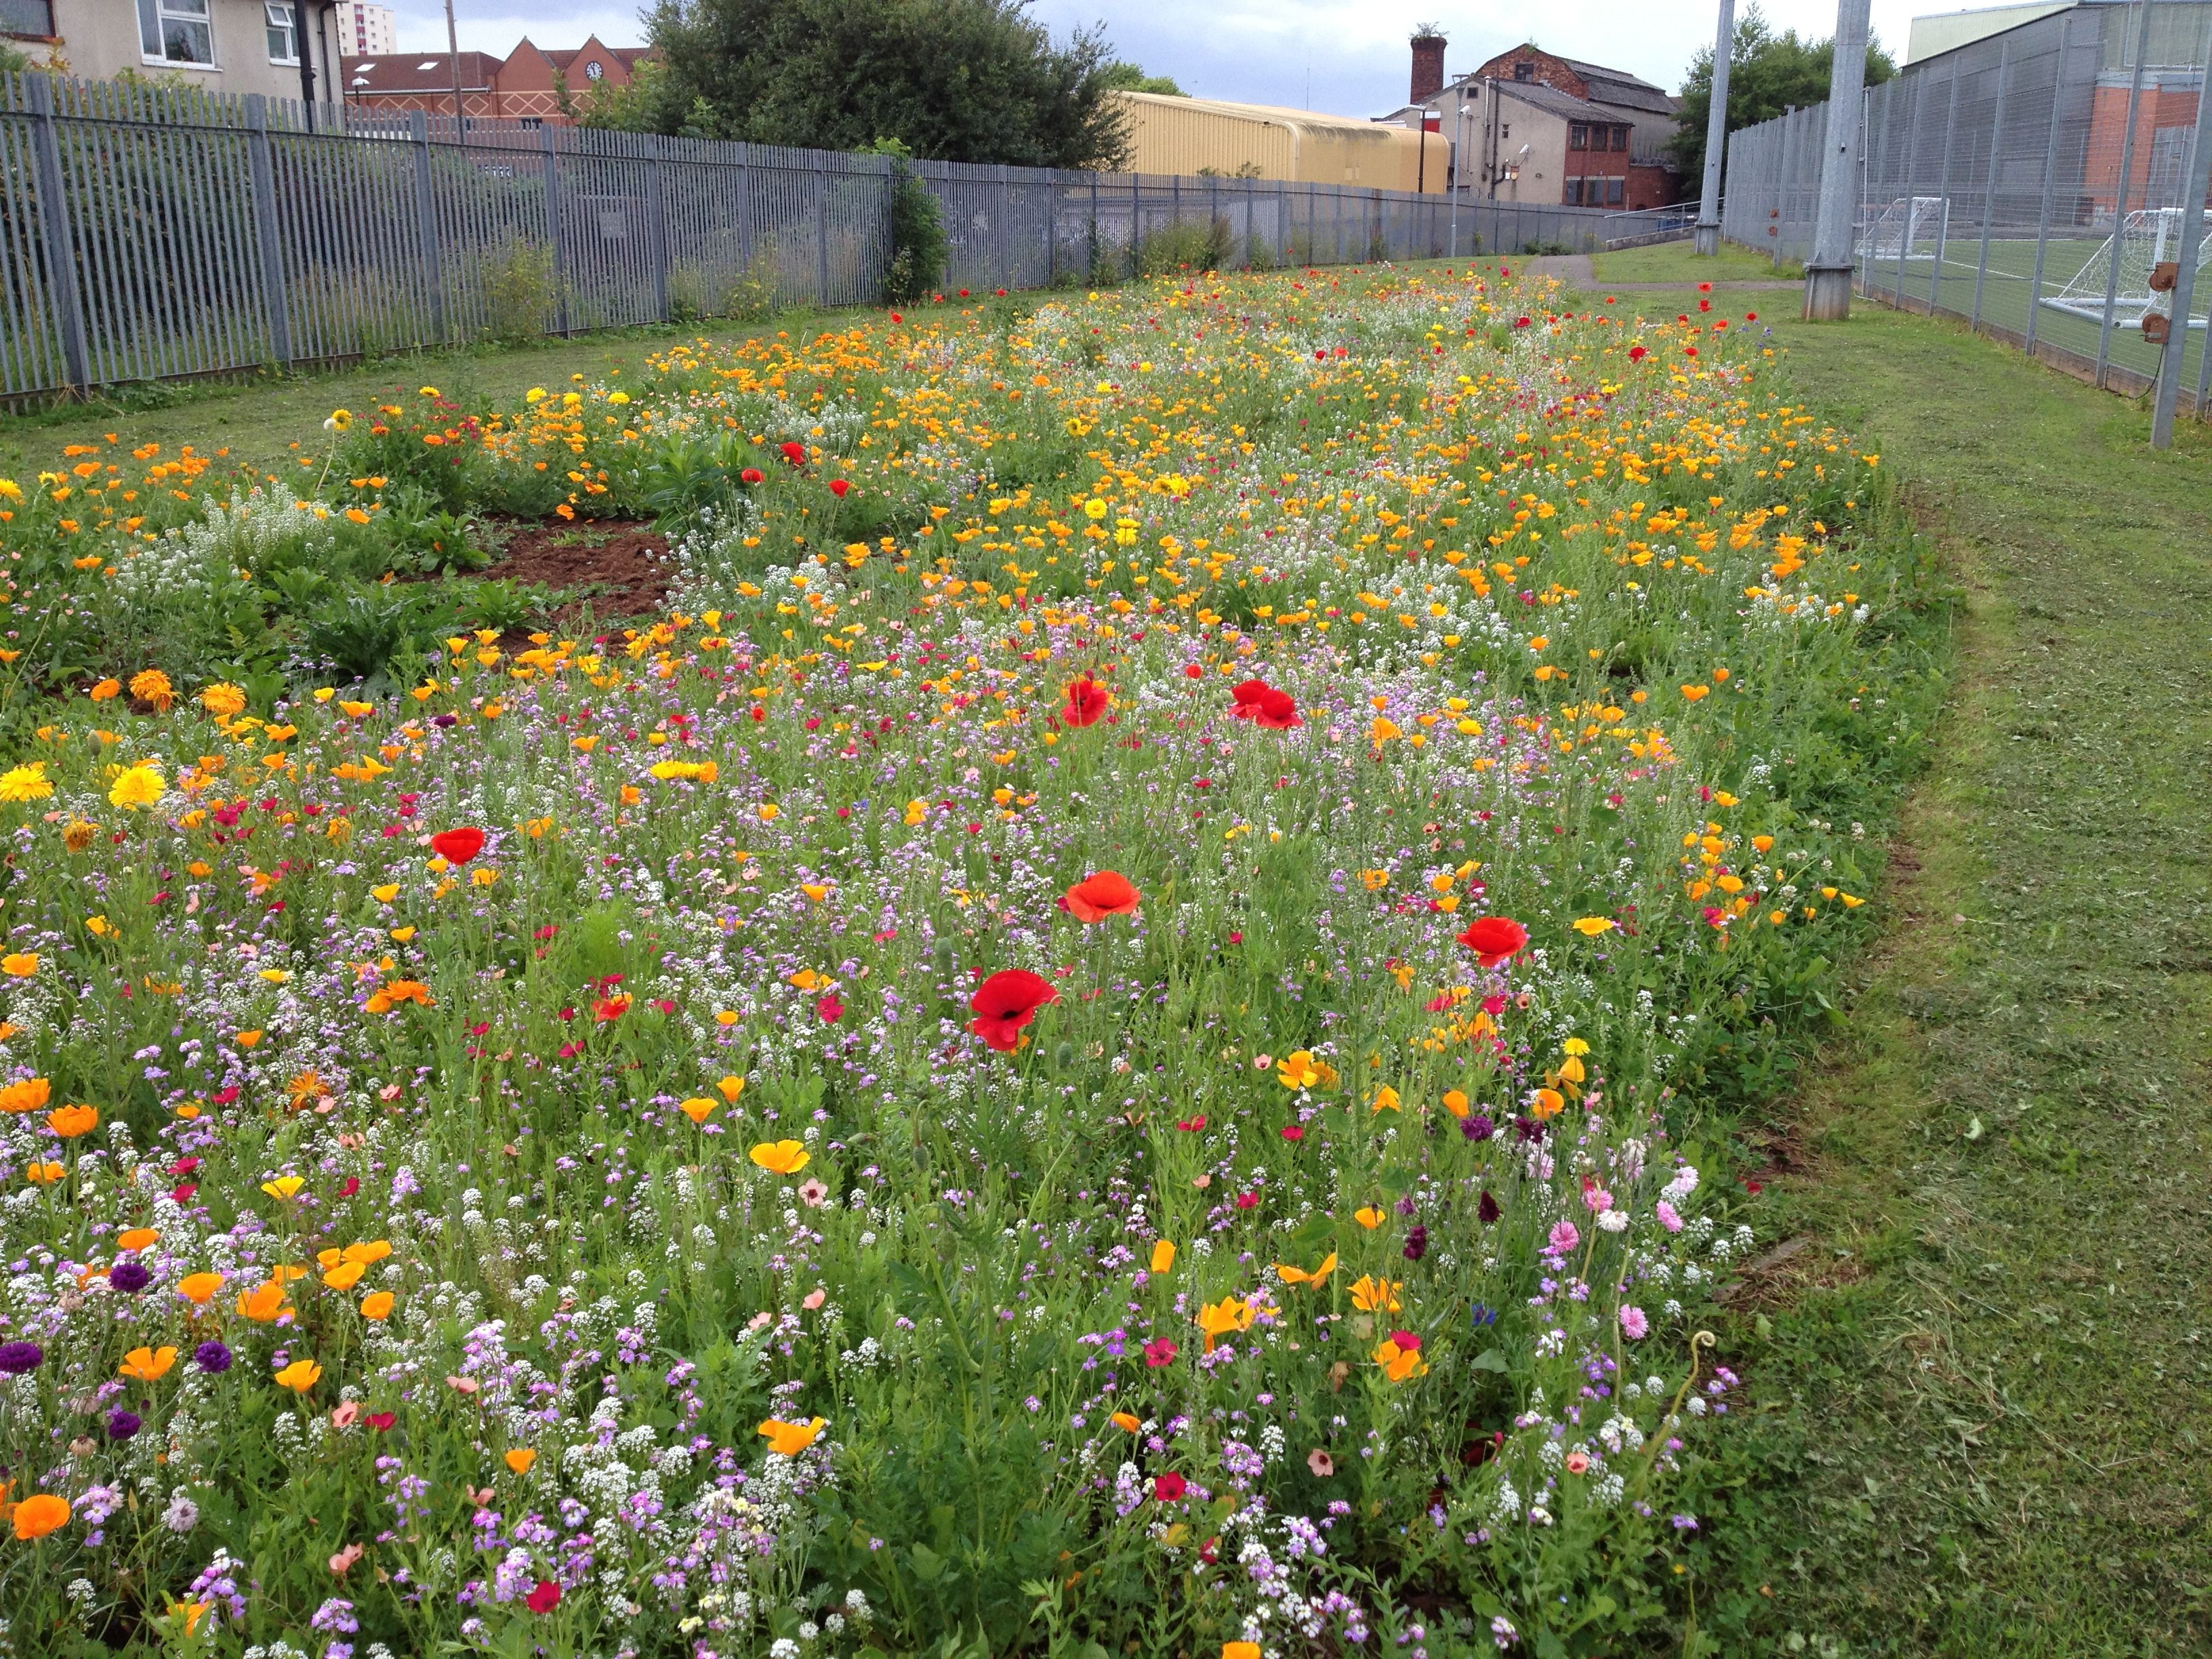 what about a wildflower meadow  like the urban pollinators project is creating in cities across